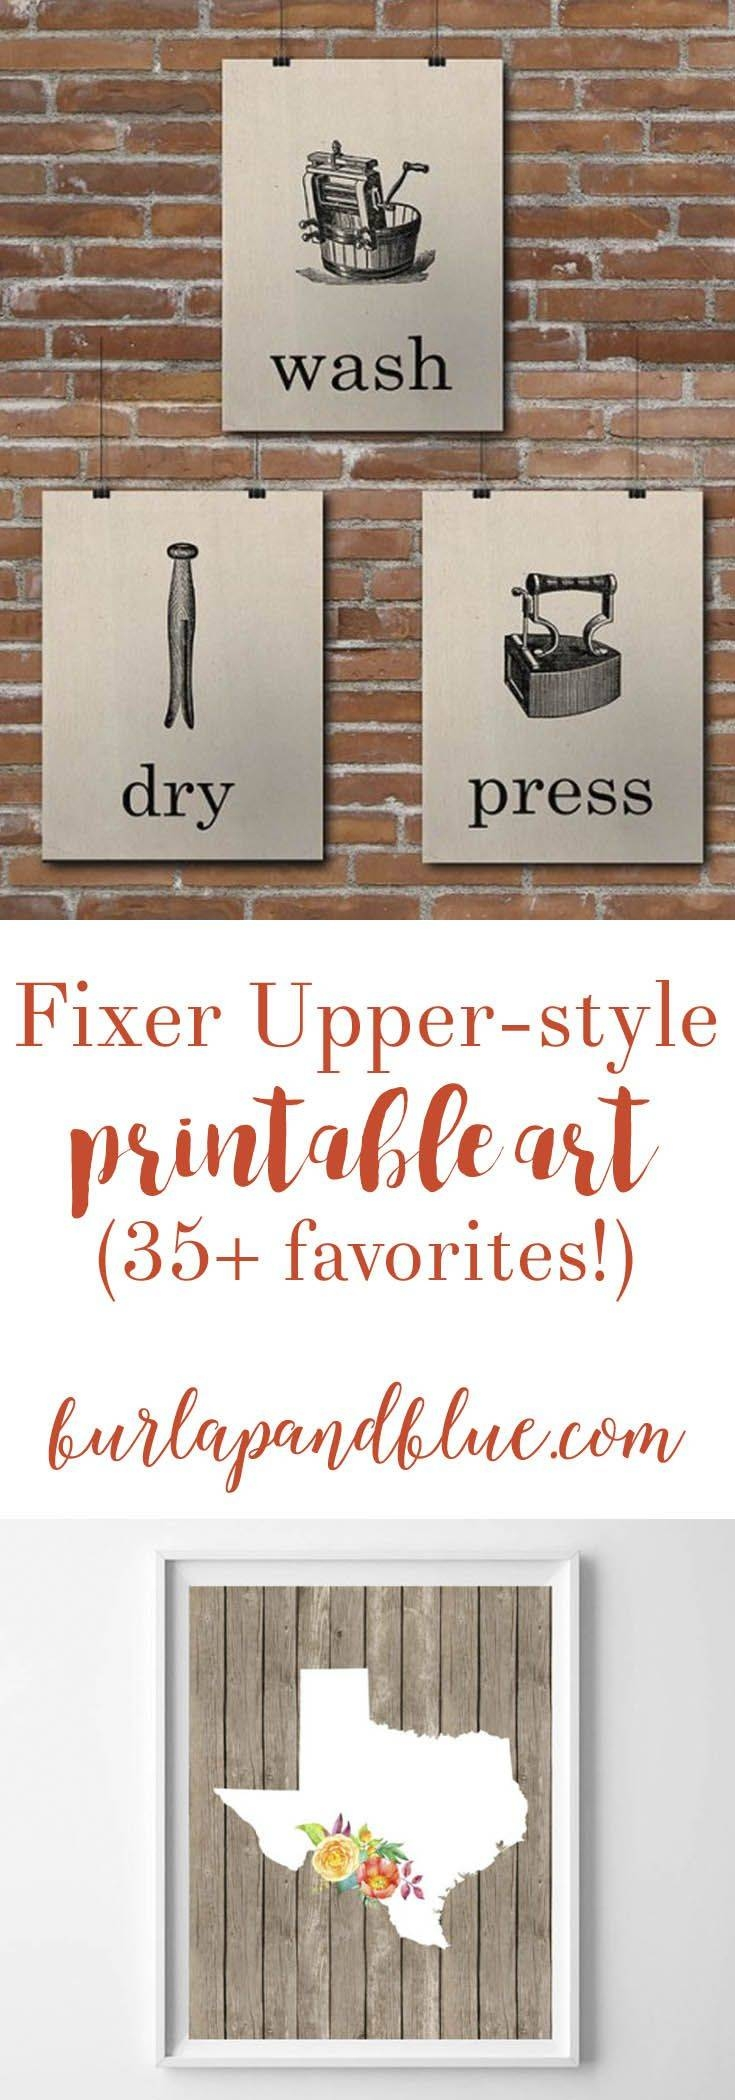 Best 25+ Laundry Room Printables Ideas On Pinterest | Laundry Art Within Newest Laundry Room Wall Art (View 7 of 30)